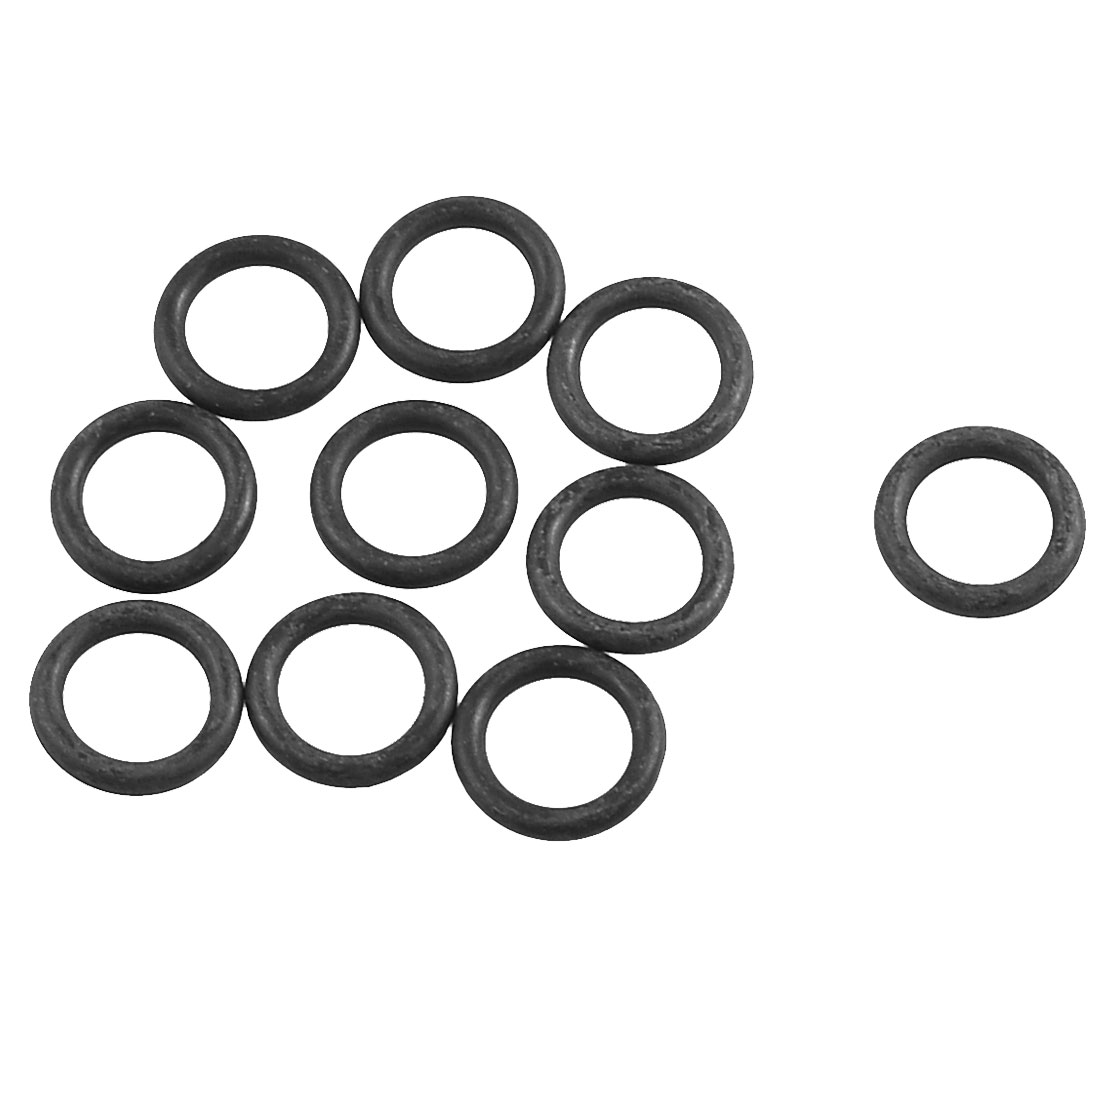 10 Pcs 16.5mm x 11.2mm x 2.65mm Flexible Rubber O Ring Oil Seal Gaskets Black